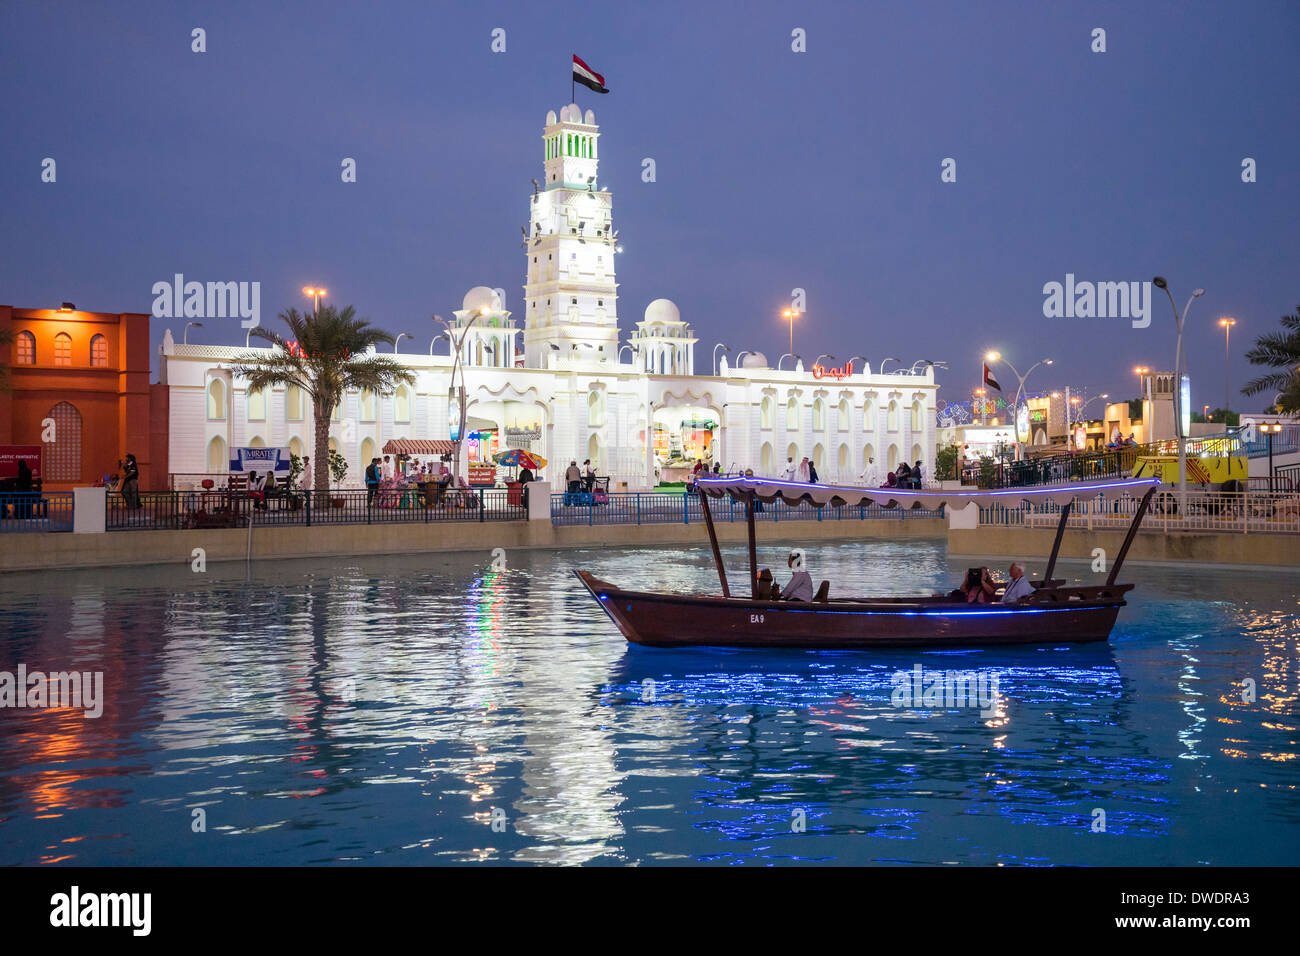 Yemen Pavilion and canal with abra water taxi at  Global Village tourist cultural attraction in Dubai United Arab Emirates - Stock Image